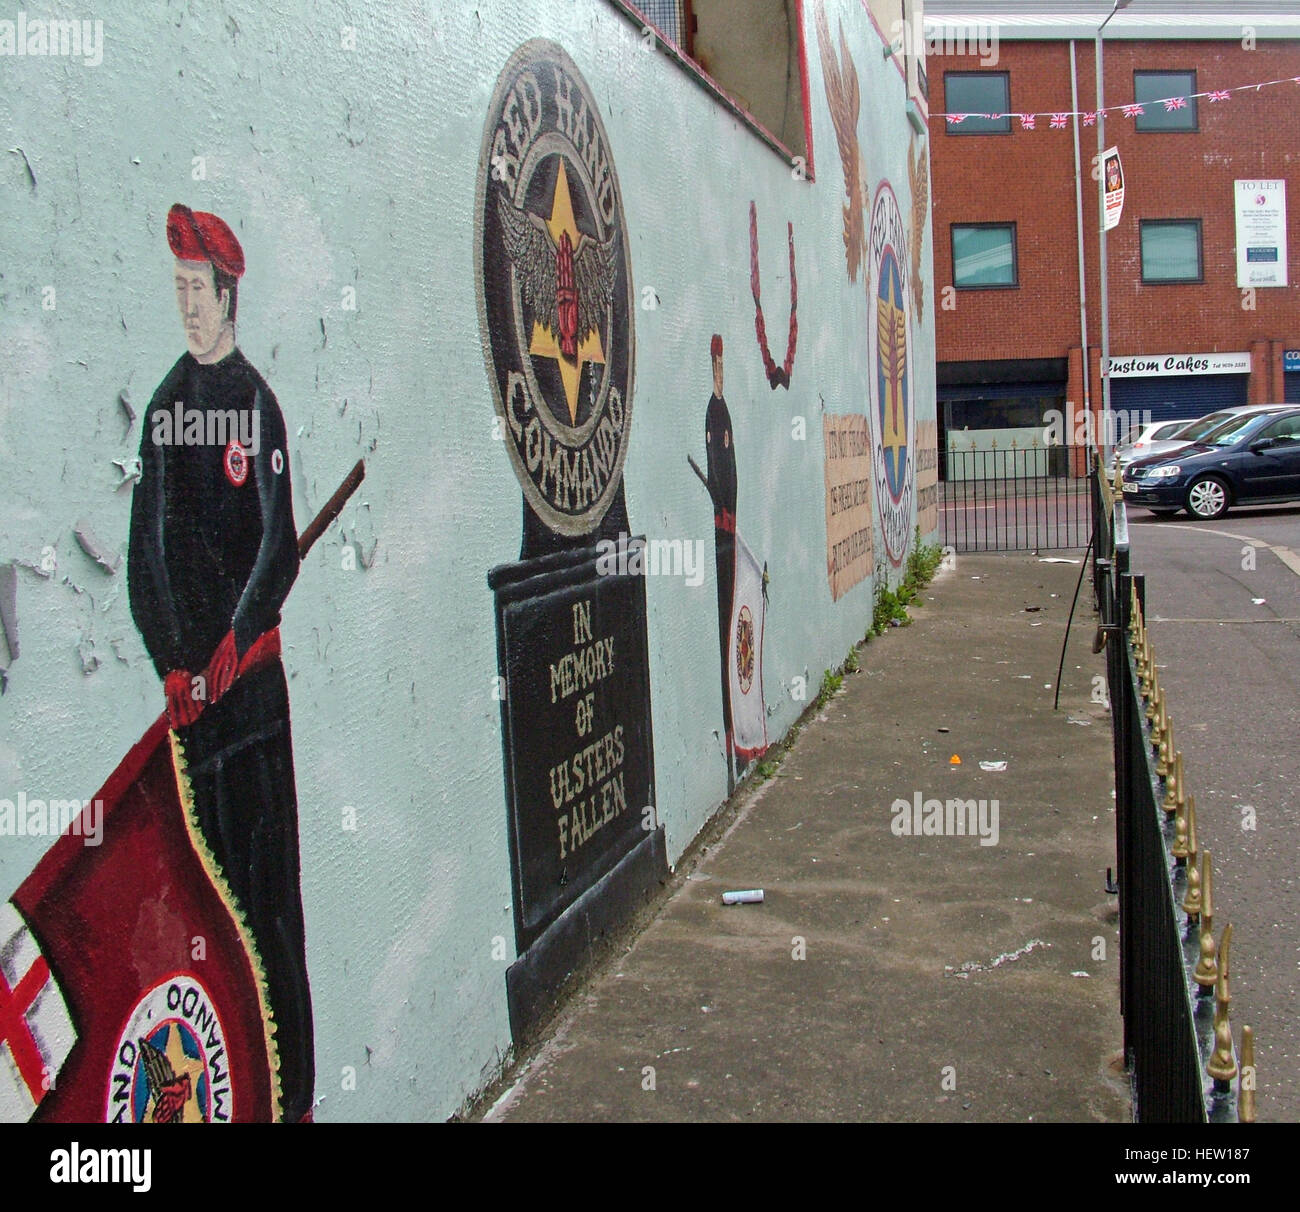 Unionist,British,Shankil,rd,painting,art,artist,martyr,fighter,para,paramilitary,soldier,wall,gable,end,gable end,community,protestant,Shankill Road Mural,West,West Belfast,NI,Northern Ireland,Soldier & Flag,Soldier and Flag,Red Hand Commando,soldier,flag,St George,St Georges,Saint Georges,fence,GoTonySmith,@HotpixUK,Tony,Smith,UK,GB,Great,Britain,United,Kingdom,Irish,British,Ireland,problem,with,problem with,issue with,NI,Northern,Northern Ireland,Belfast,City,Centre,Art,Artists,the,troubles,The Troubles,Good Friday Agreement,Peace,honour,painting,wall,walls,tribute,unionism,Fight,Justice,West,Beal,feirste,martyrs,social,tour,tourism,tourists,urban,six,counties,6,backdrop,county,Antrim,DUP,democratic Unionist,red hand,of Ulster,Red Hand Of Ulster,Shankill,Rd,road,Shankill Road,rail,railing,railings,Buy Pictures of,Buy Images Of,Images of,Stock Images,Tony Smith,United Kingdom,Great Britain,British Isles